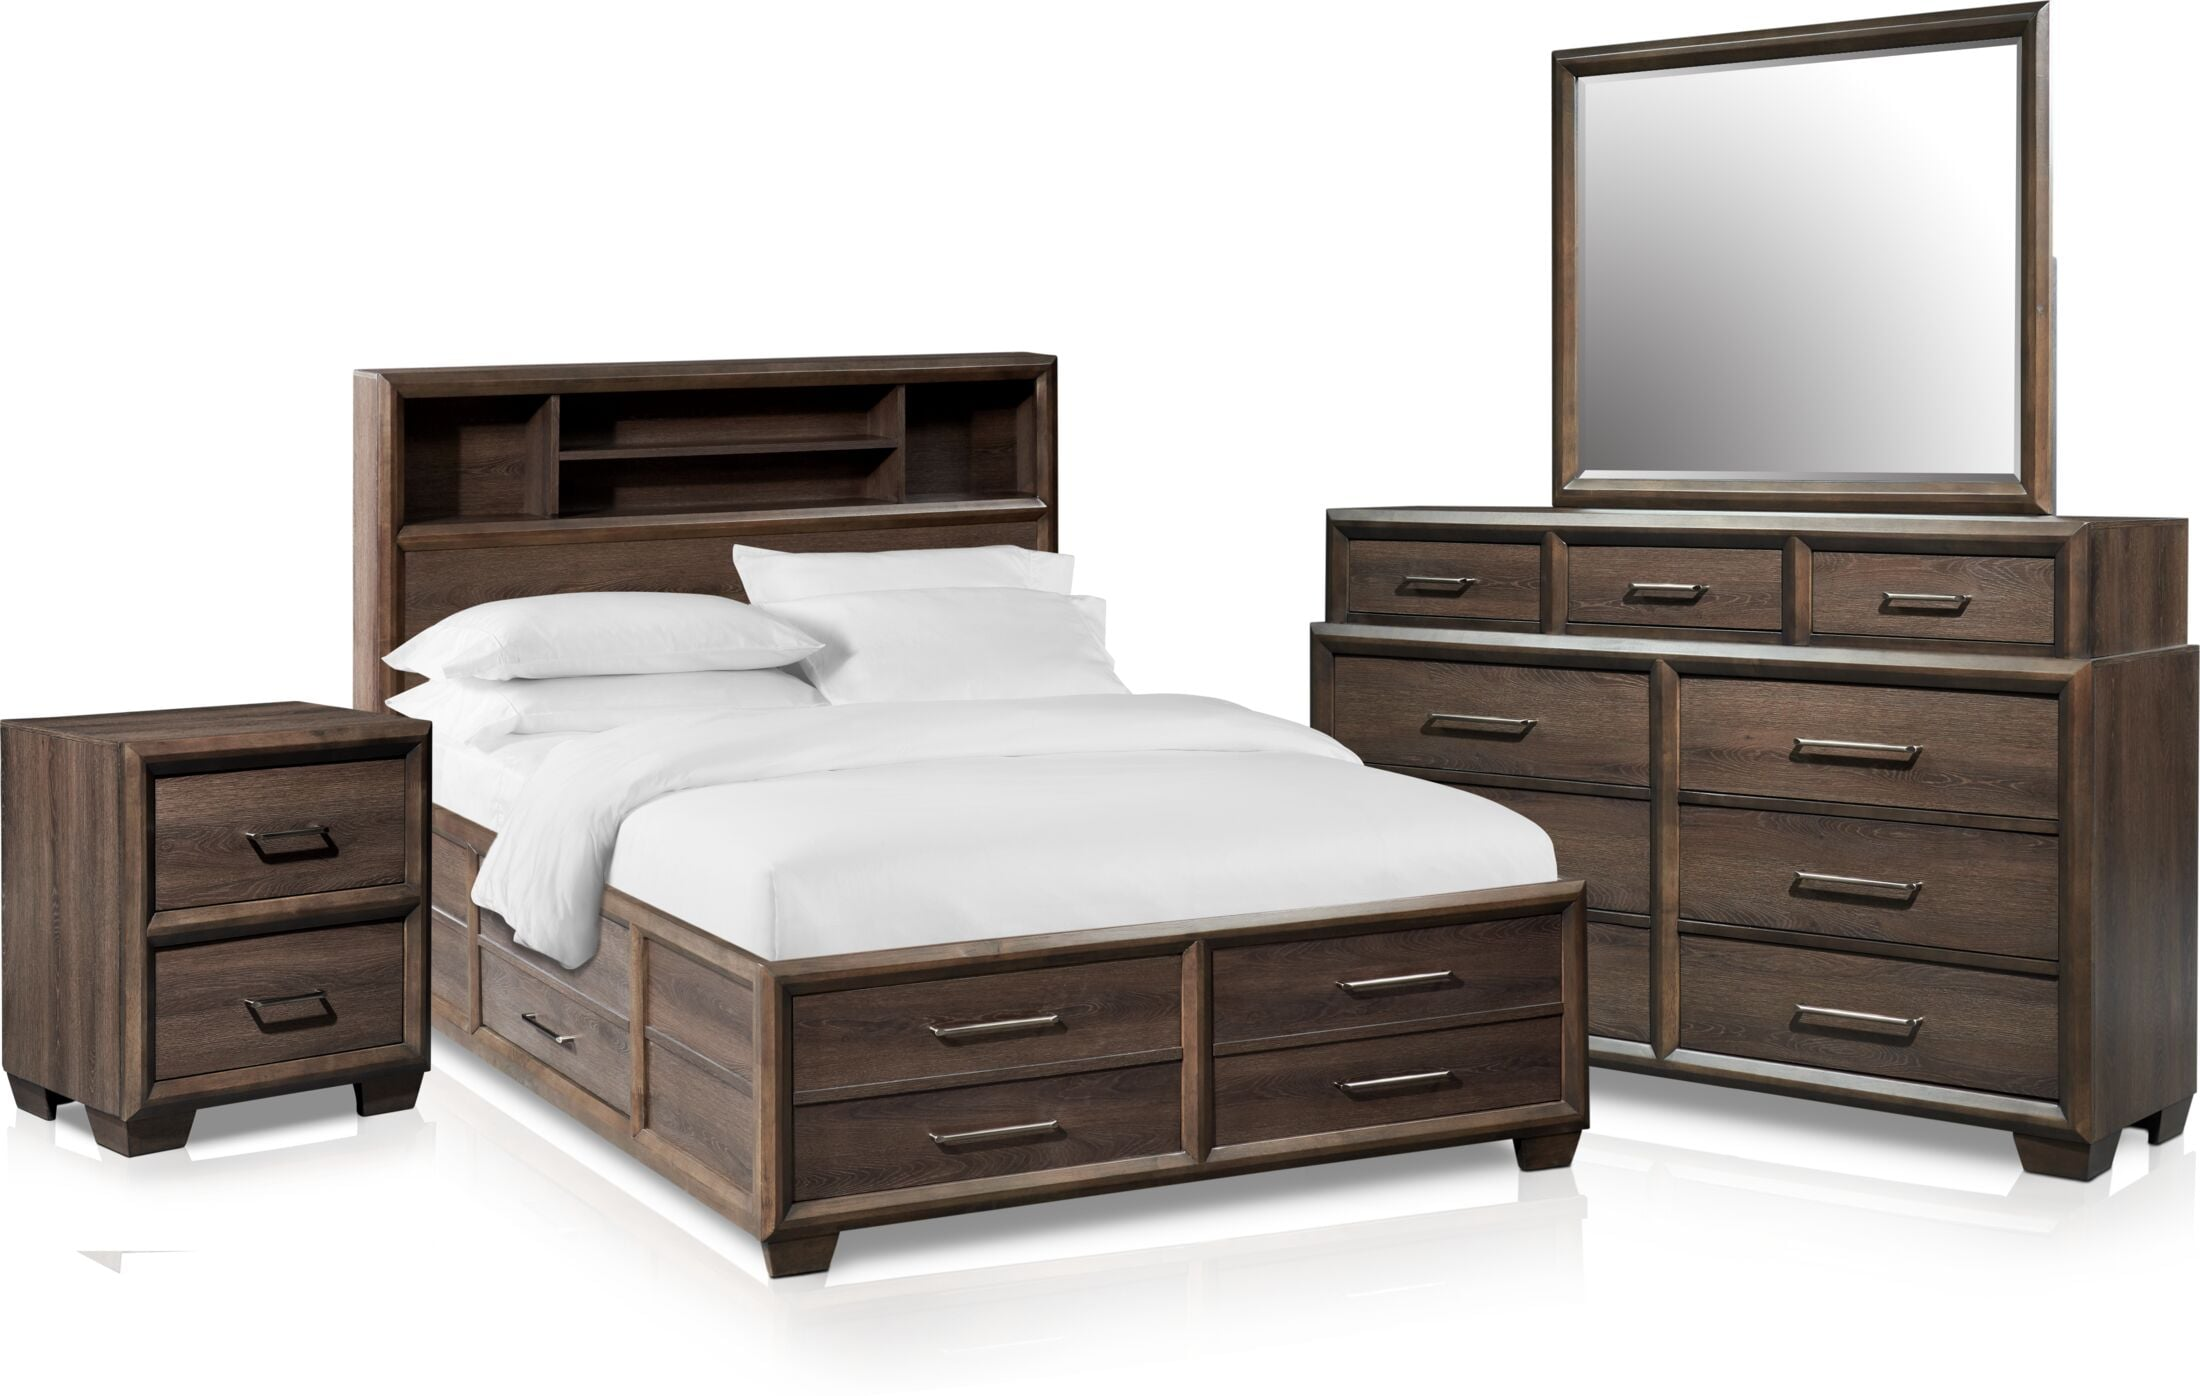 Bedroom Furniture - Dakota 6-Piece Bookcase Storage Bedroom Set with Nightstand, Dresser and Mirror